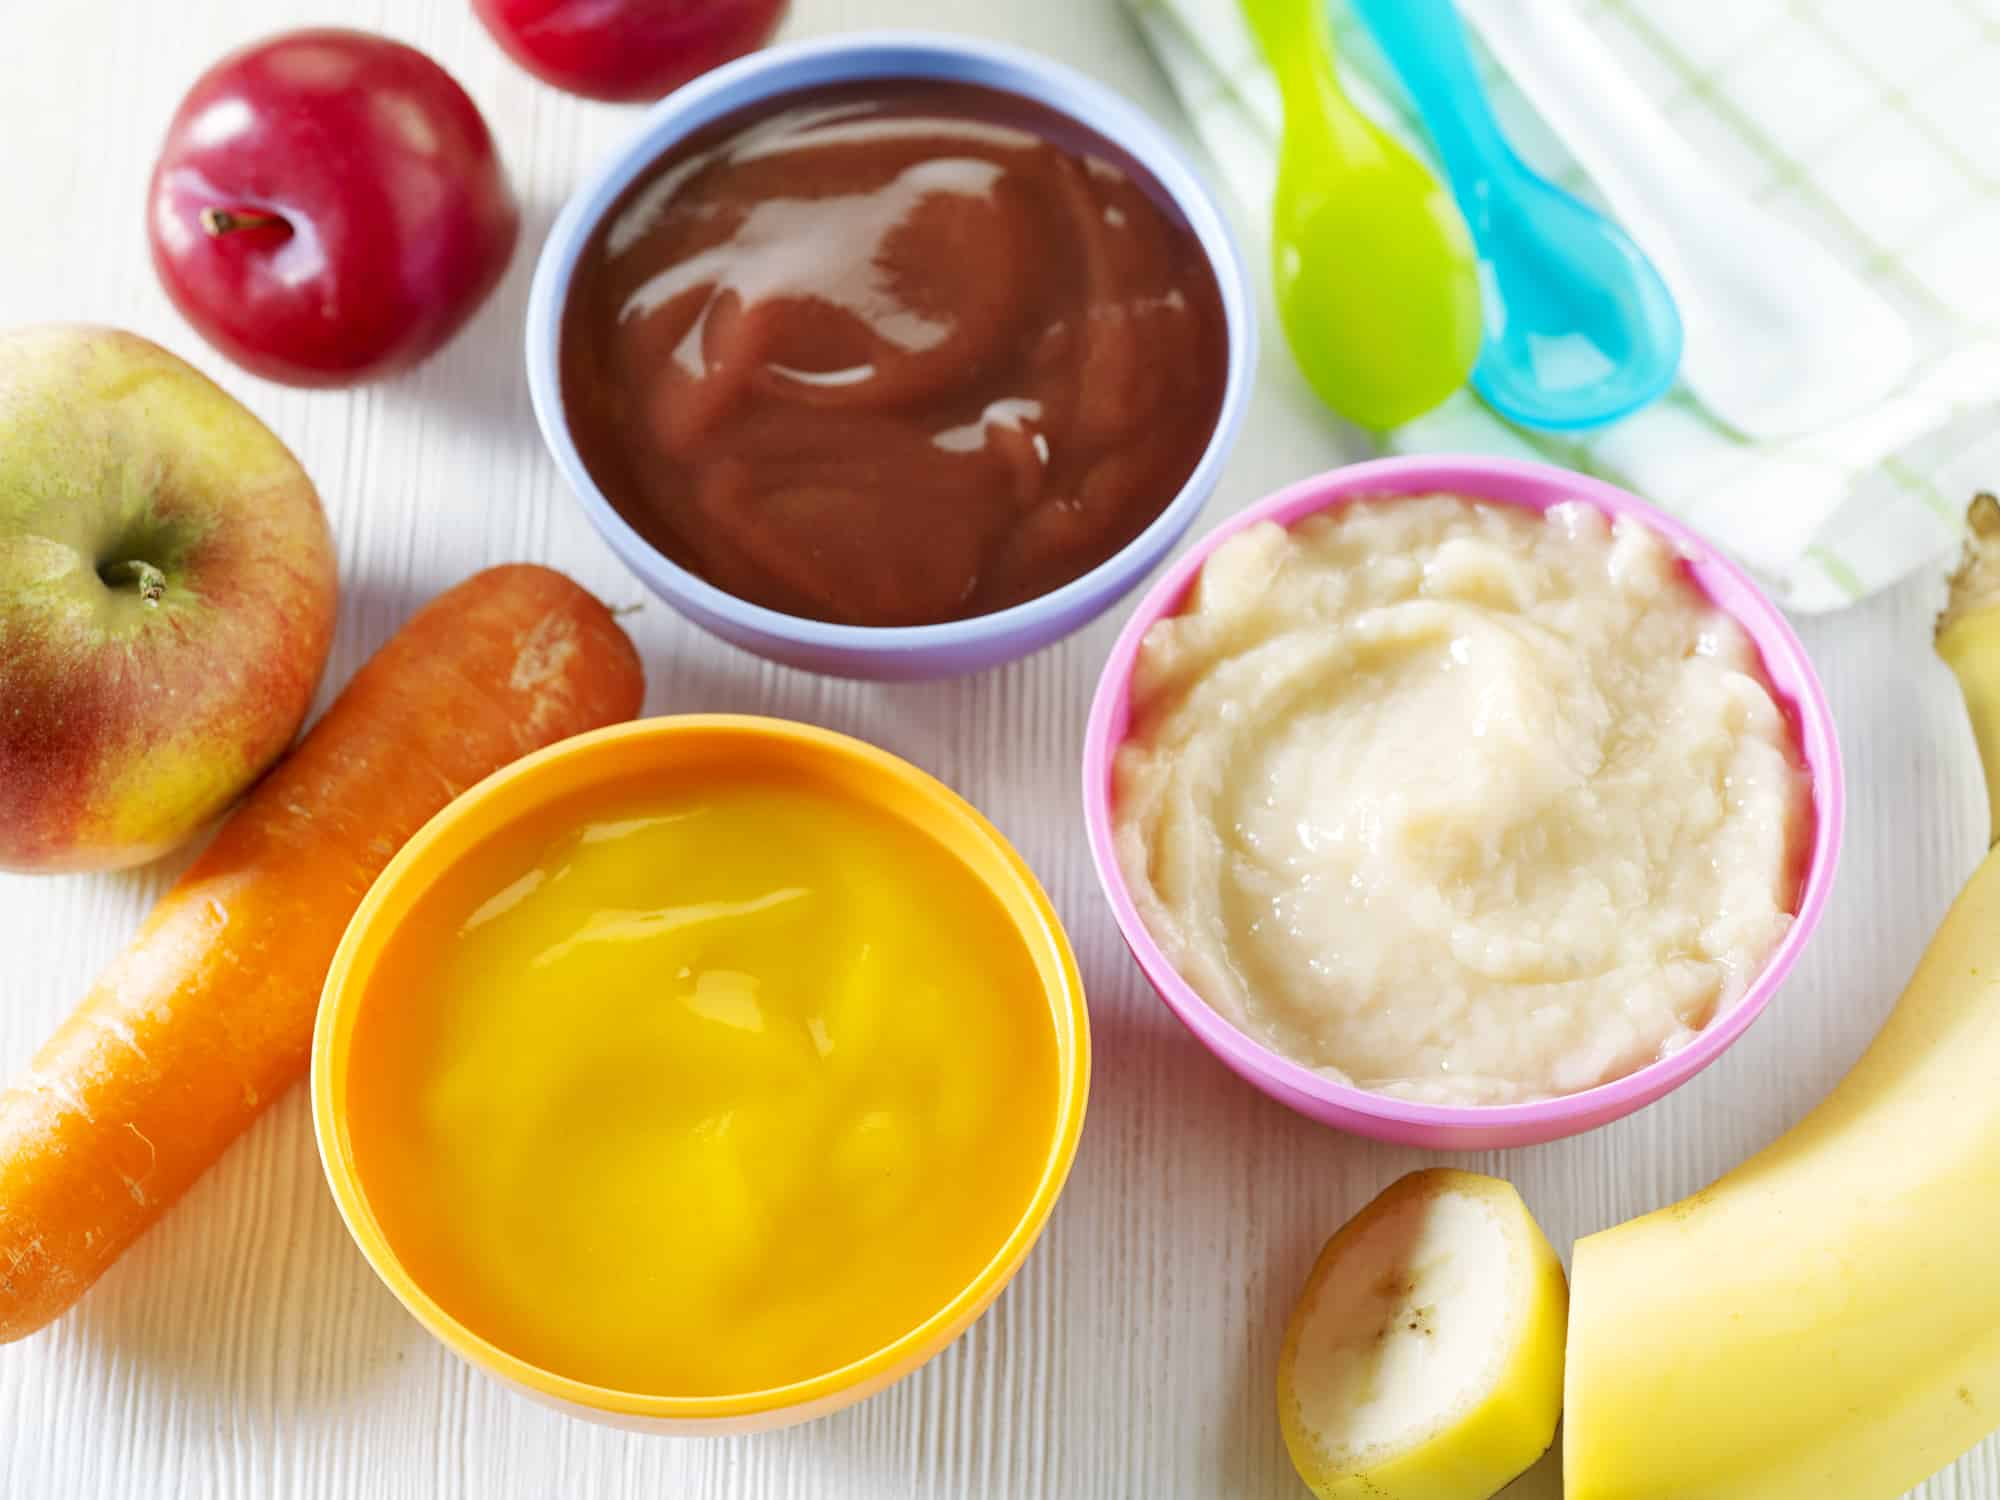 various kinds of baby food in plastic bowls, top view